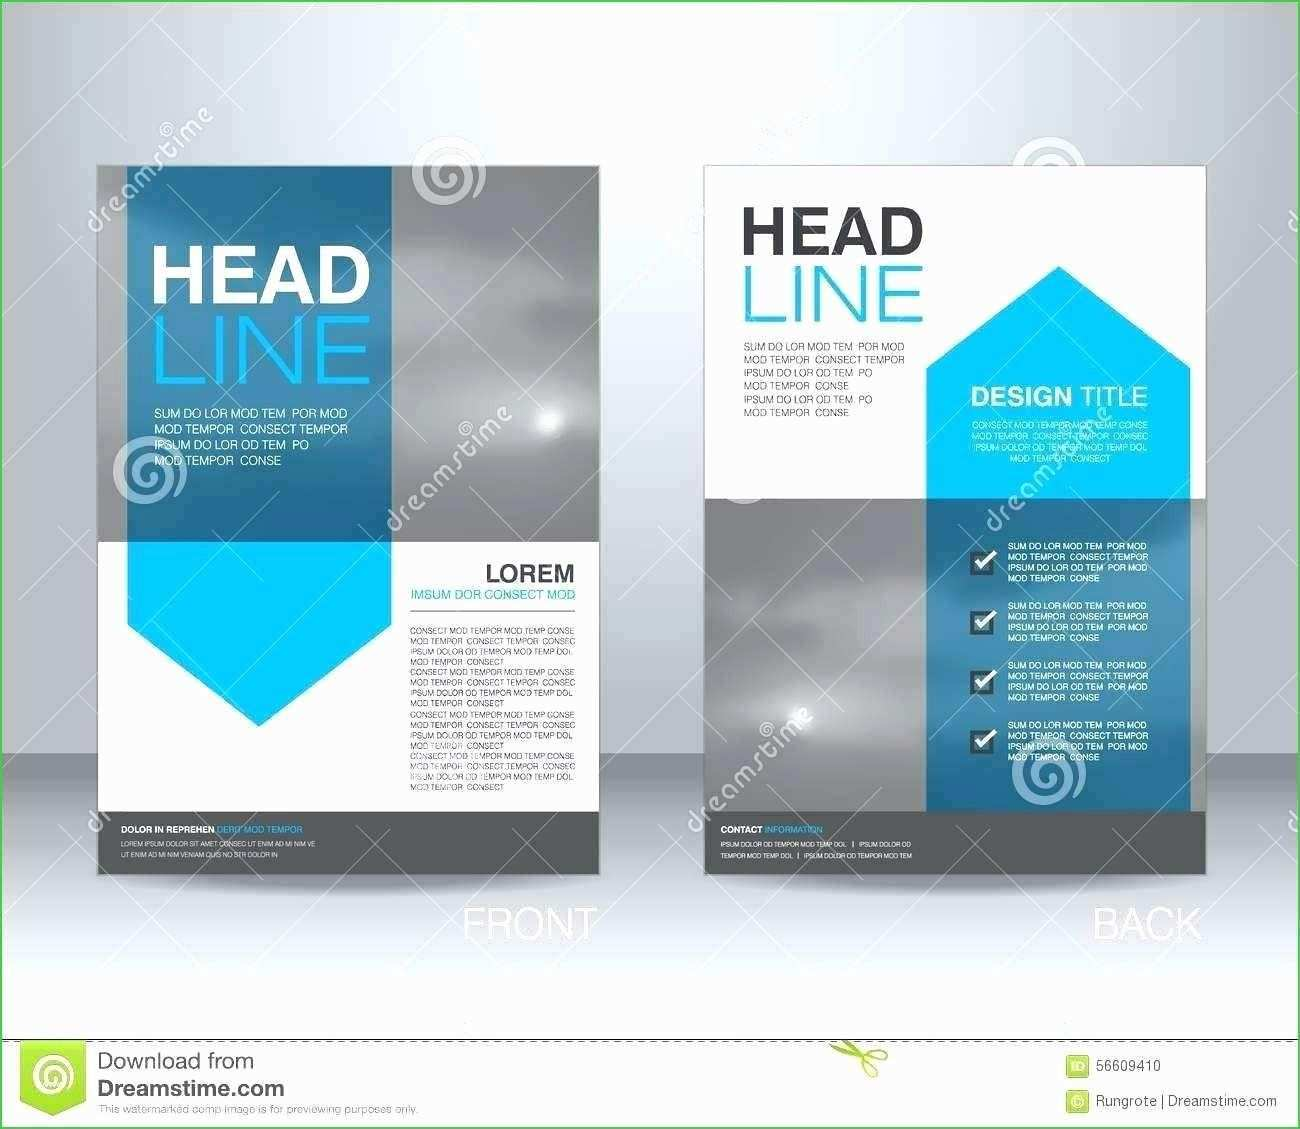 Pin By Mohamed Bakr On Verona Residents In 2020 Brochure Design Template Free Brochure Template Trifold Brochure Template